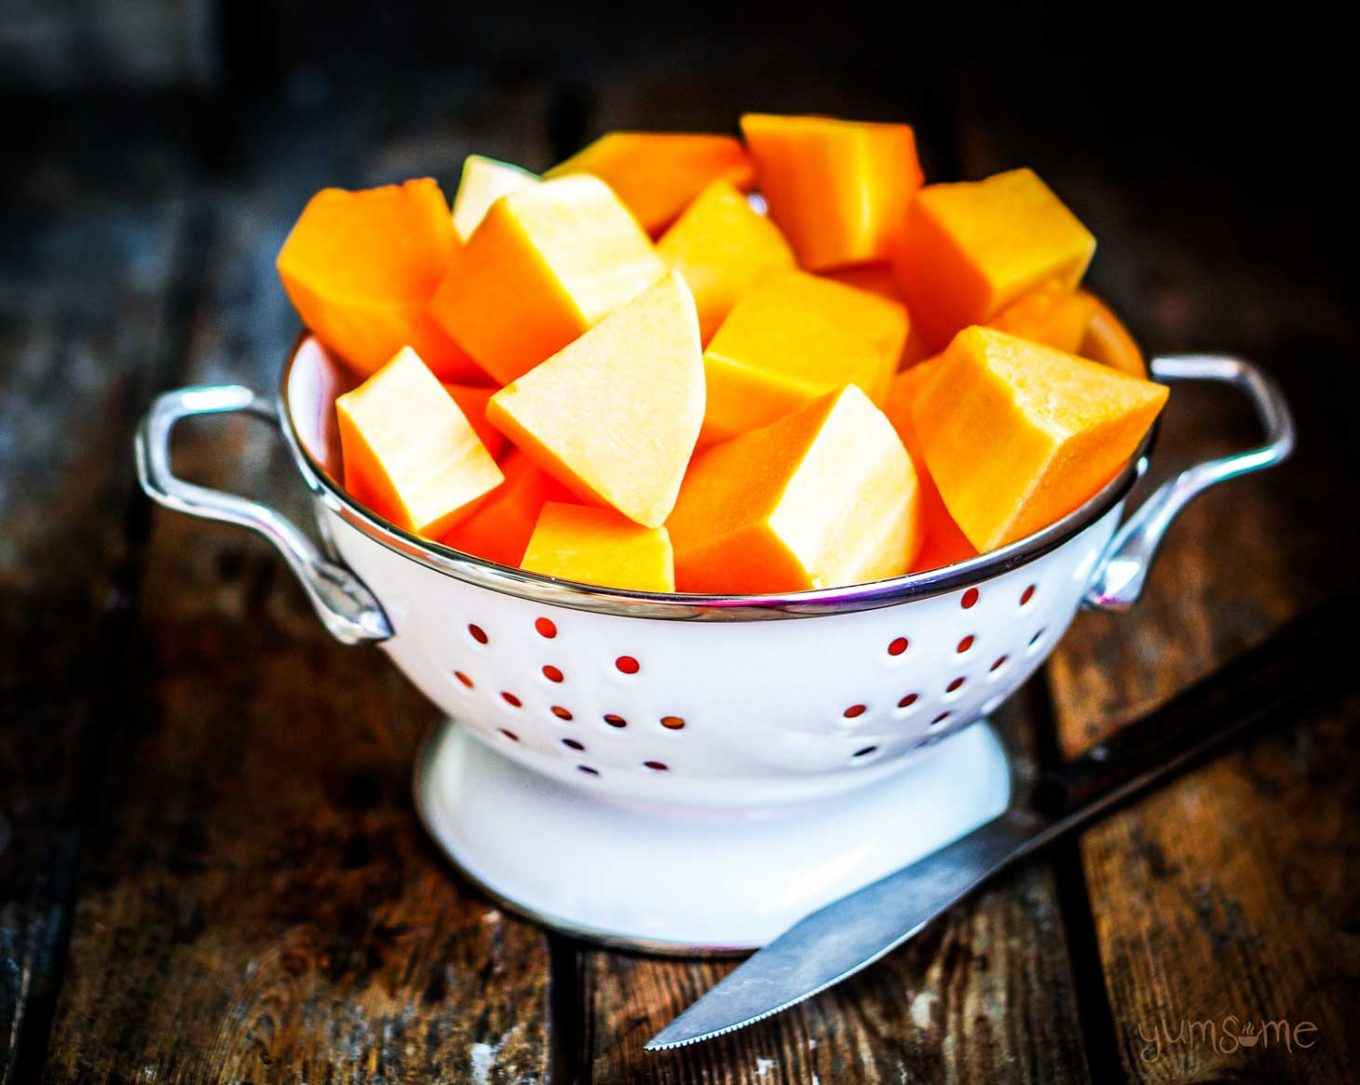 A white colander filled with diced pumpkin, on a dark wooden table.